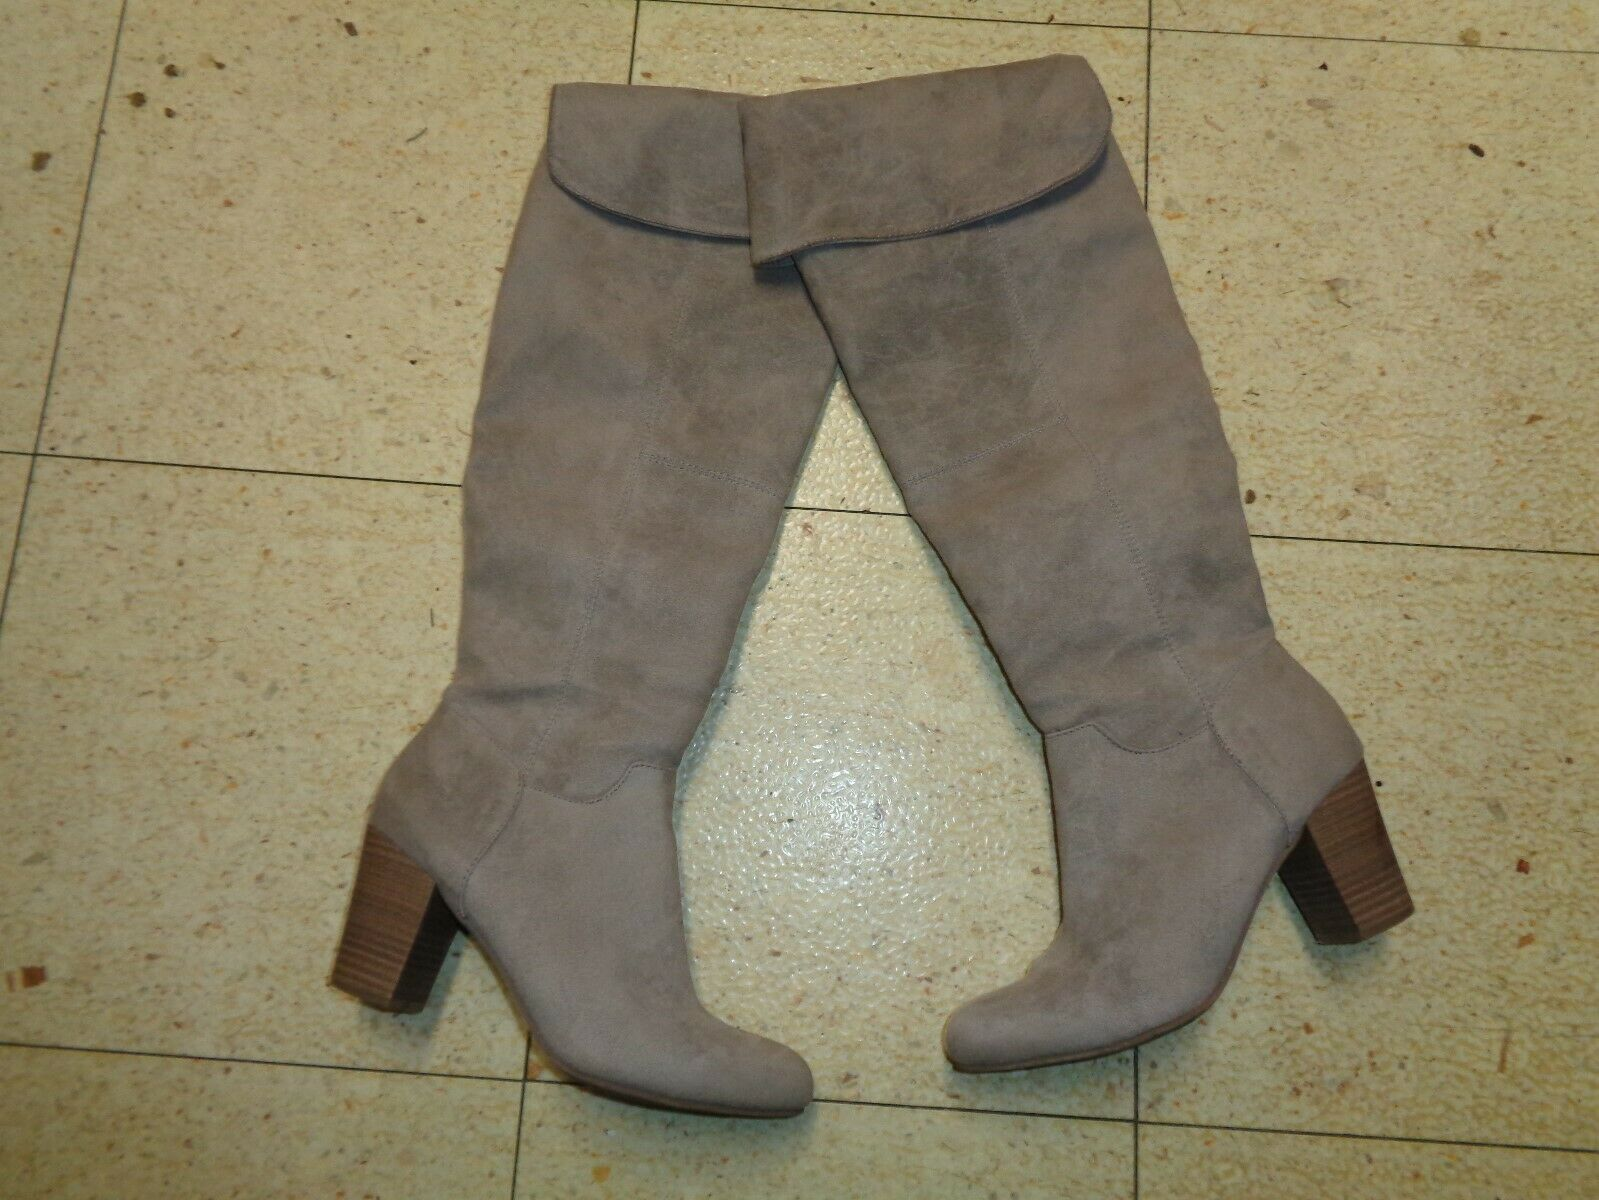 Kenneth Cole REACTION Over-The-Knee Boots, Taupe,8 1 2M  Retail